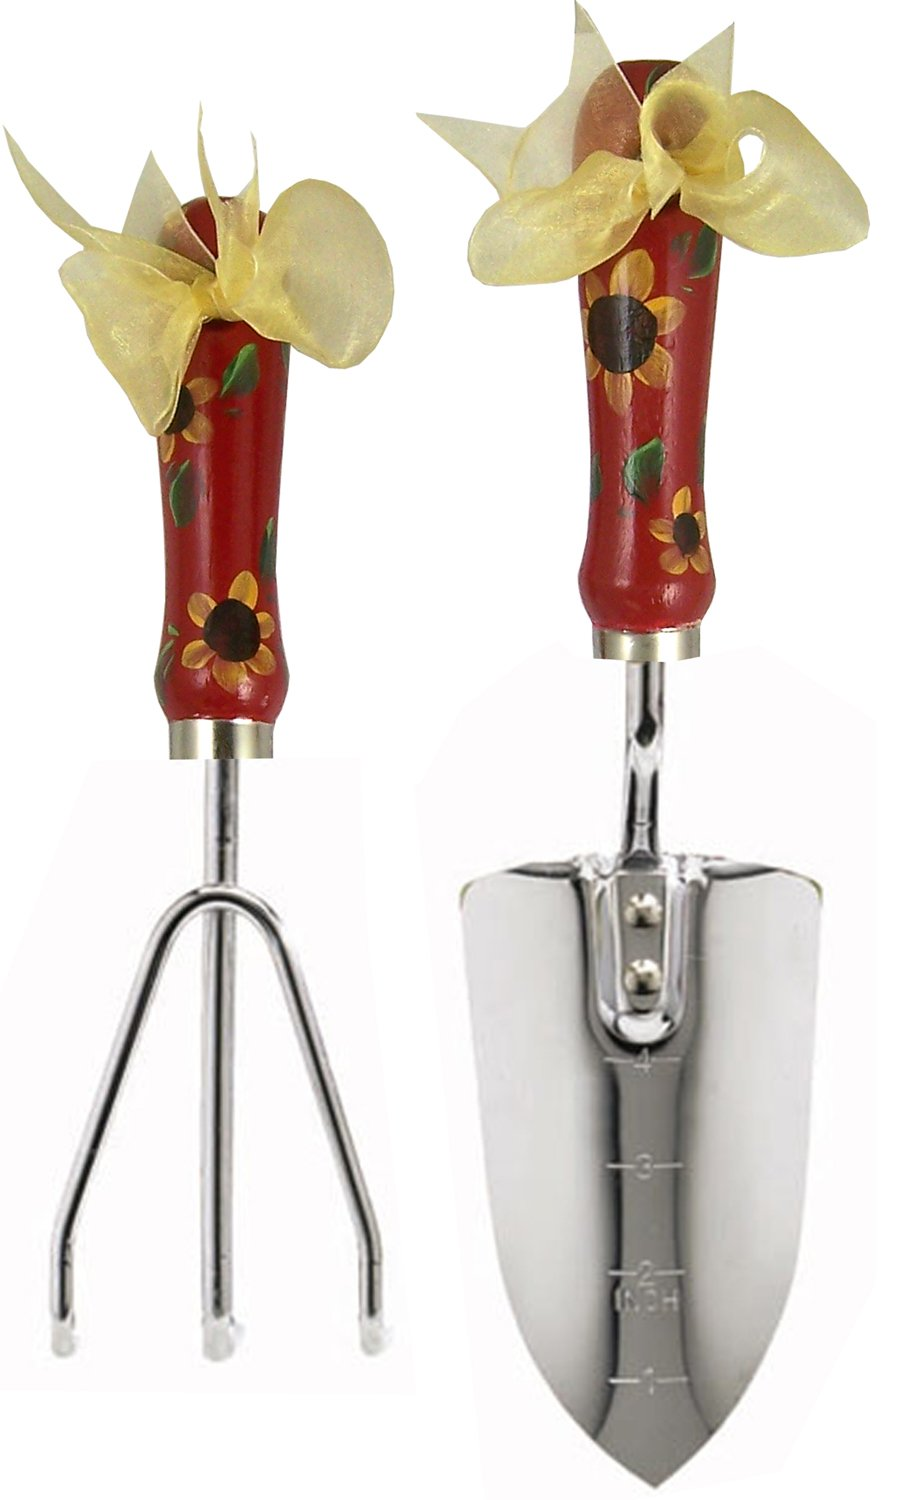 Cute Tools Stainless Steel Garden Shovel and Three Prong Rake - Landscaping Instrument, Hand Painted Wooden Handle In The USA, Durable Yard and Gardening Equipment From CuteTools! - Art For A Cause, Honduran Yellow Sunflower